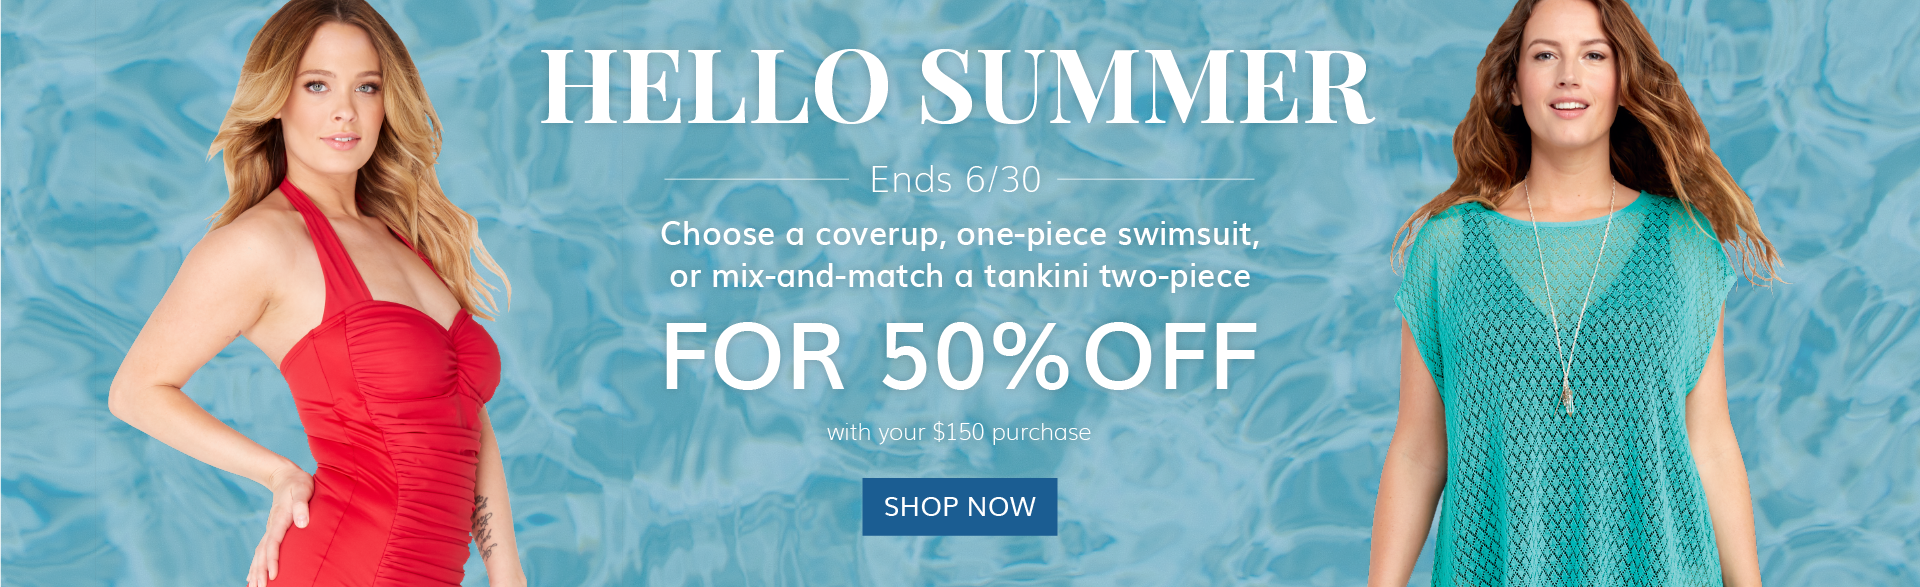 Hello Summer for 50% Off